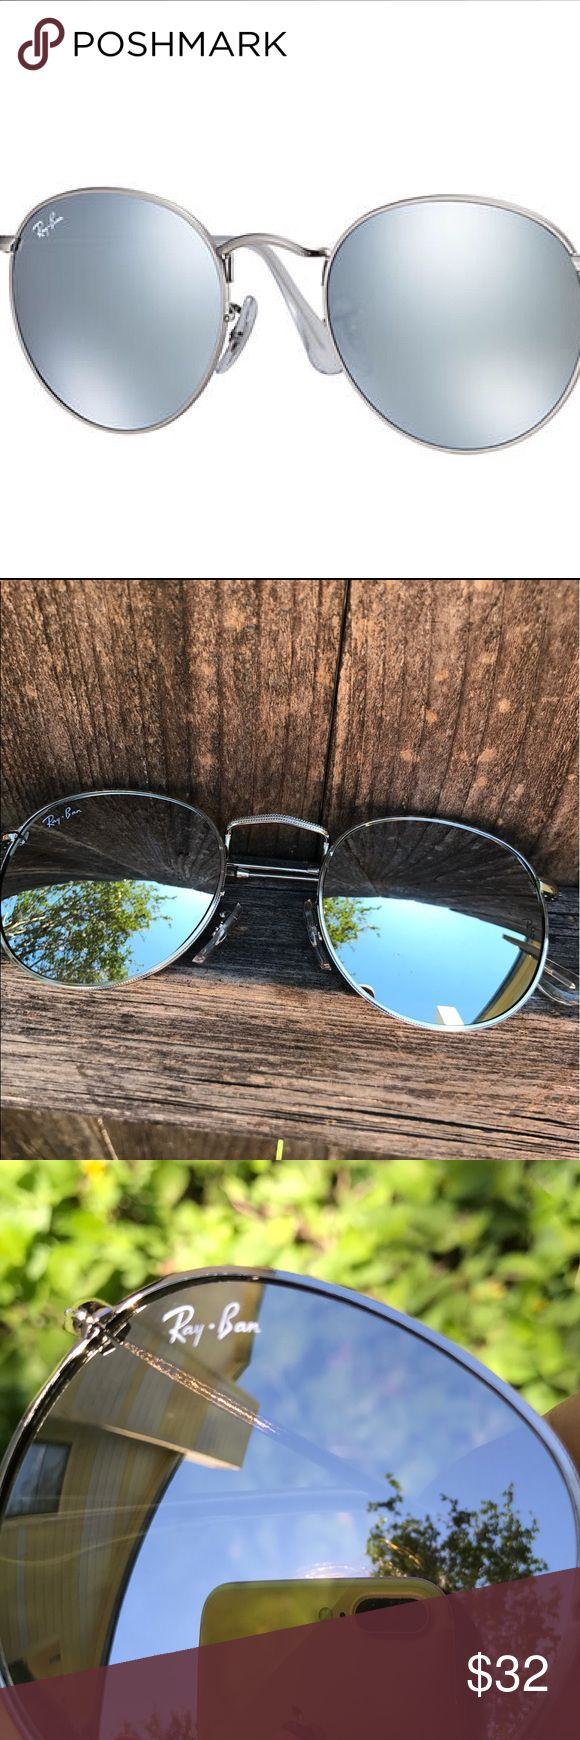 ROUND FLASH LENSES reflective Silver First photo it's just for exposure  New Sunglasses Aviator  Never worn  Ray-Ban inspired sunglasses  PRICE FIRM! NOT TRADE Not box  Not case   FAST SHIPPING! Ray-Ban Accessories Sunglasses